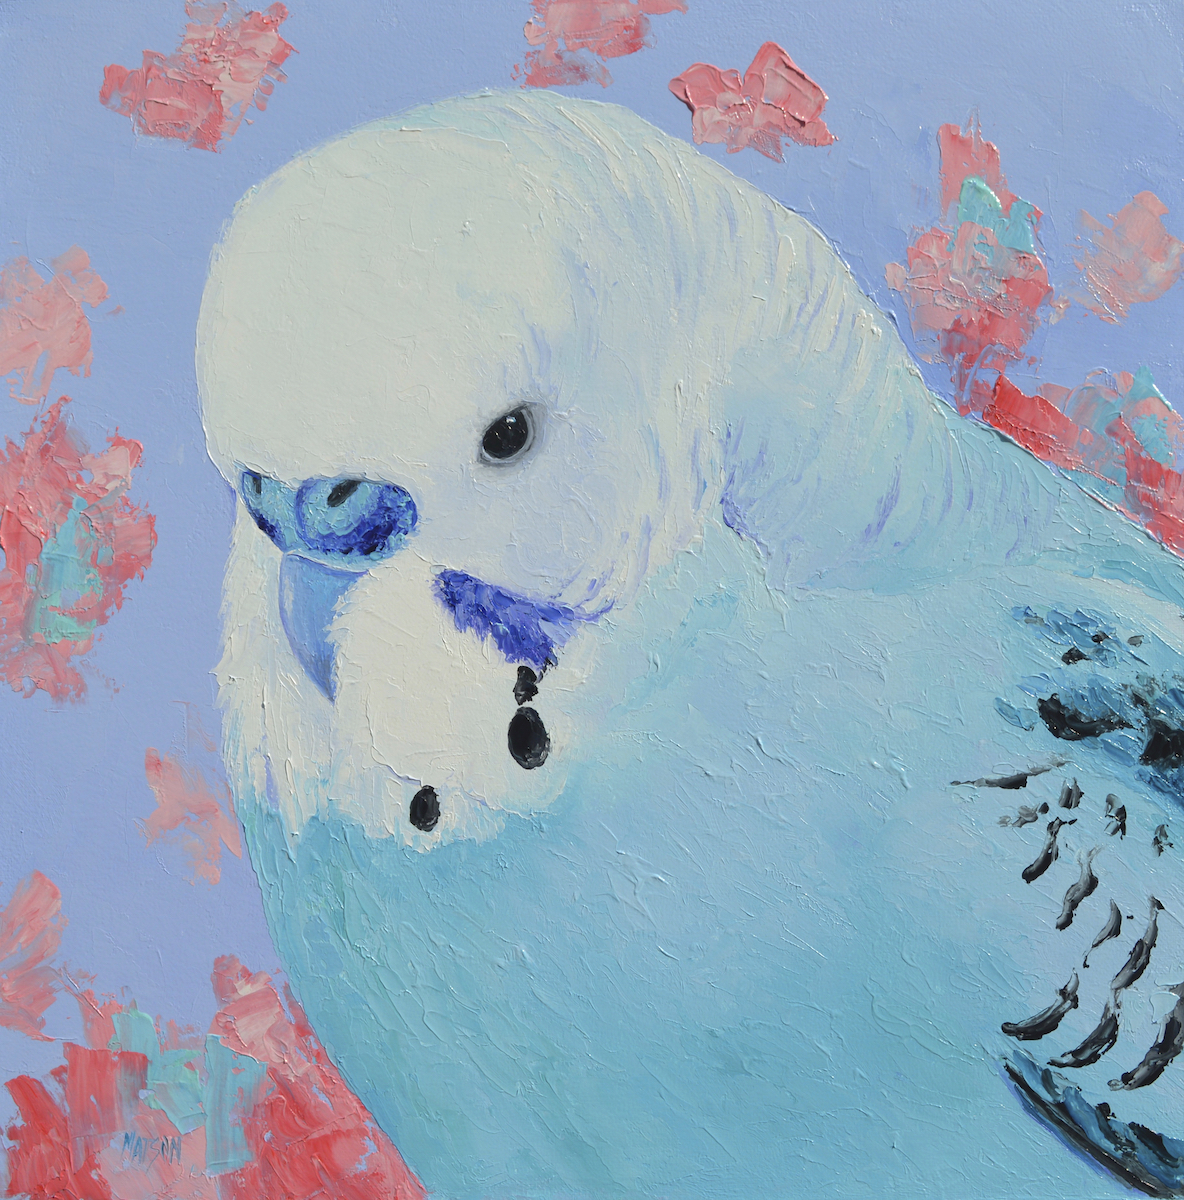 Blue Budgie Painting By Jan Matson